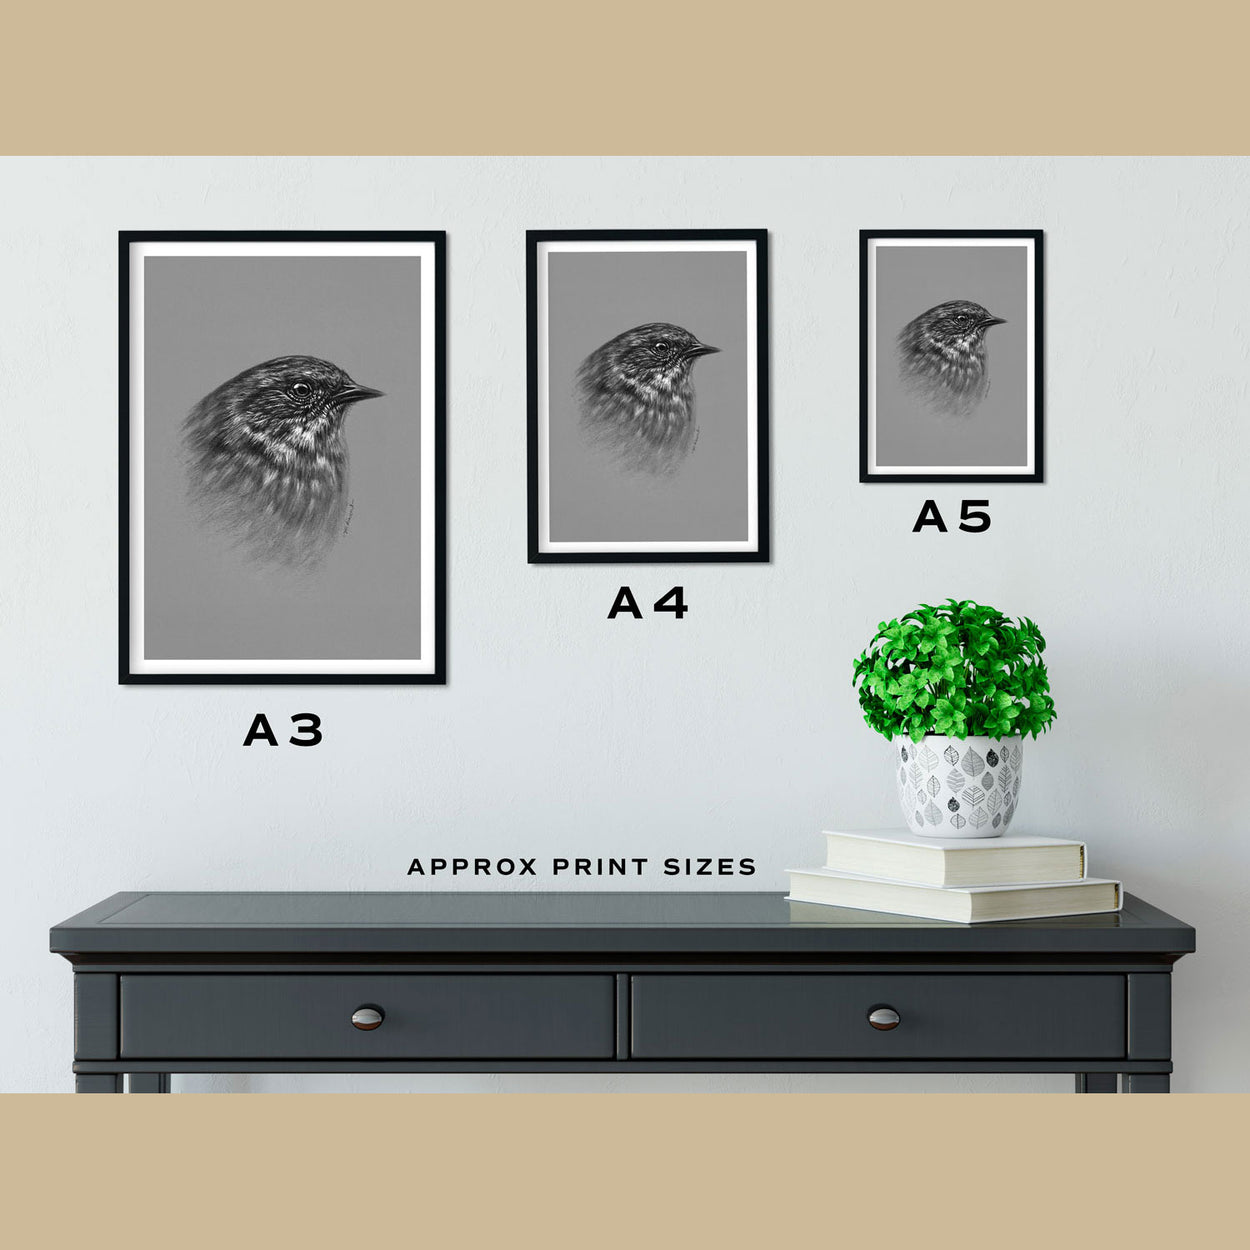 Dunnock Prints Size Comparison - The Thriving Wild